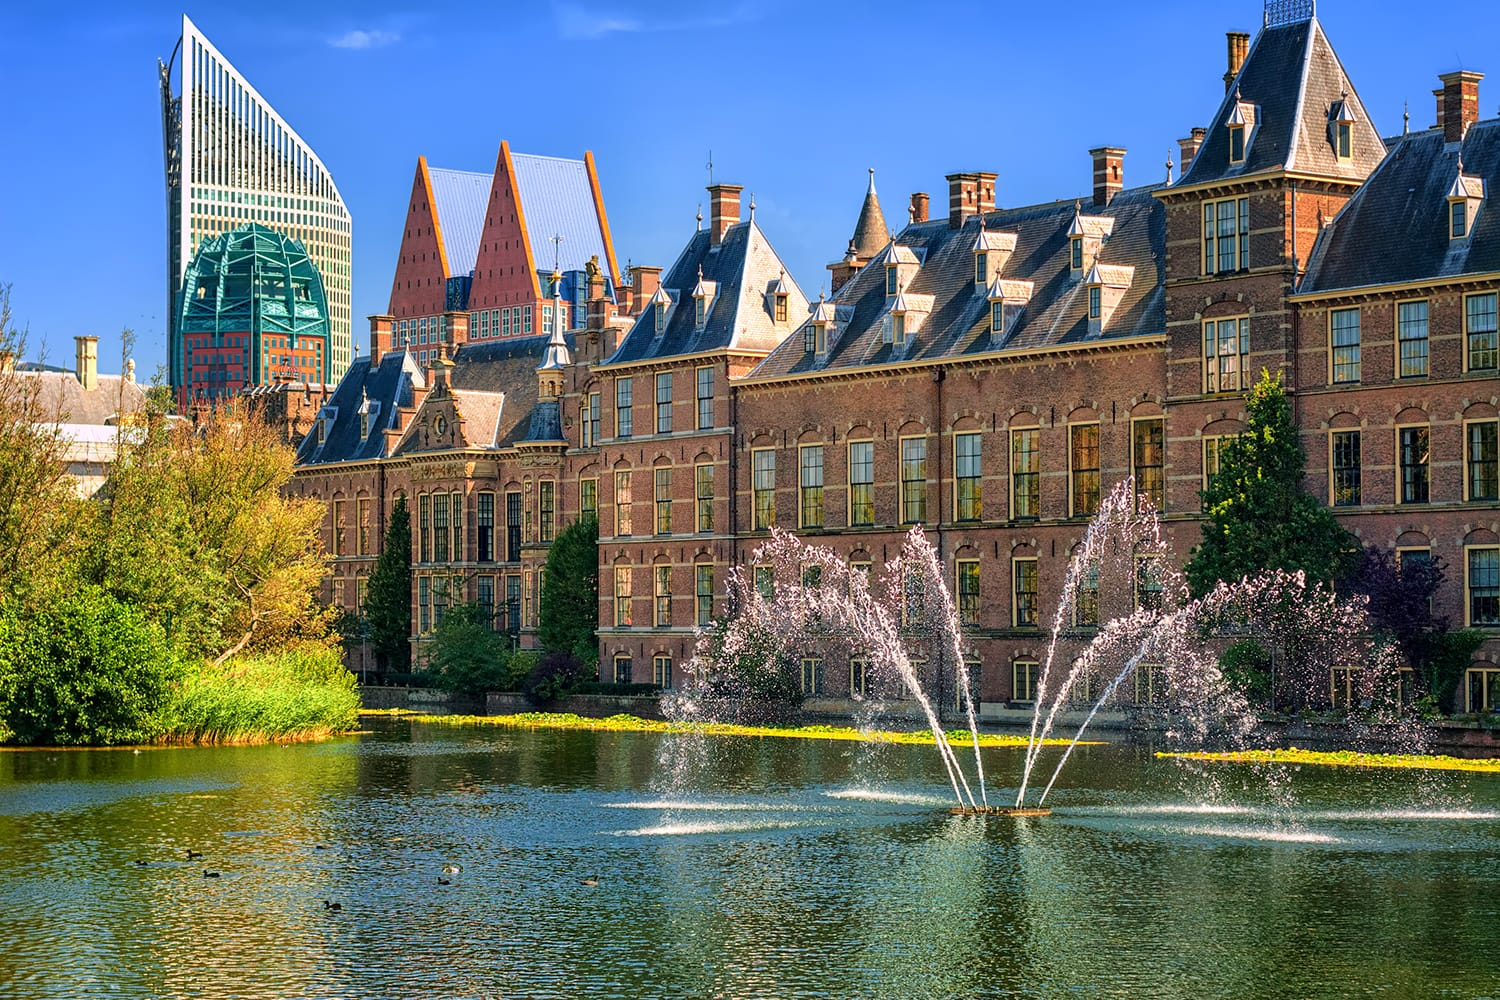 iew of the Binnenhof palace on place of Parliament, The Hague, Netherlands